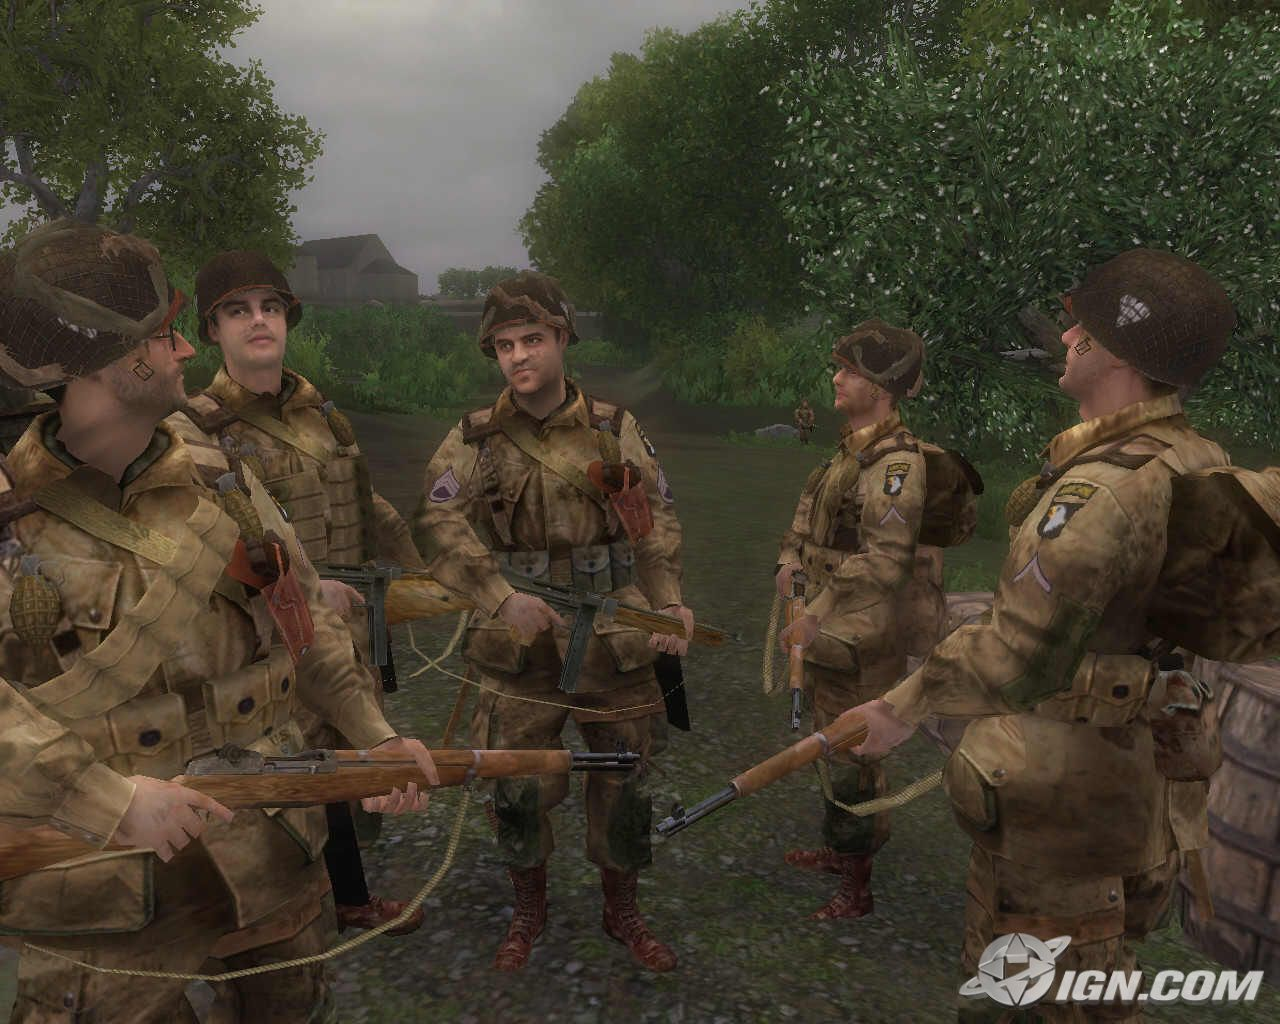 game fix / crack: brothers in arms: road to hill 30 v1.10 eng nodvd